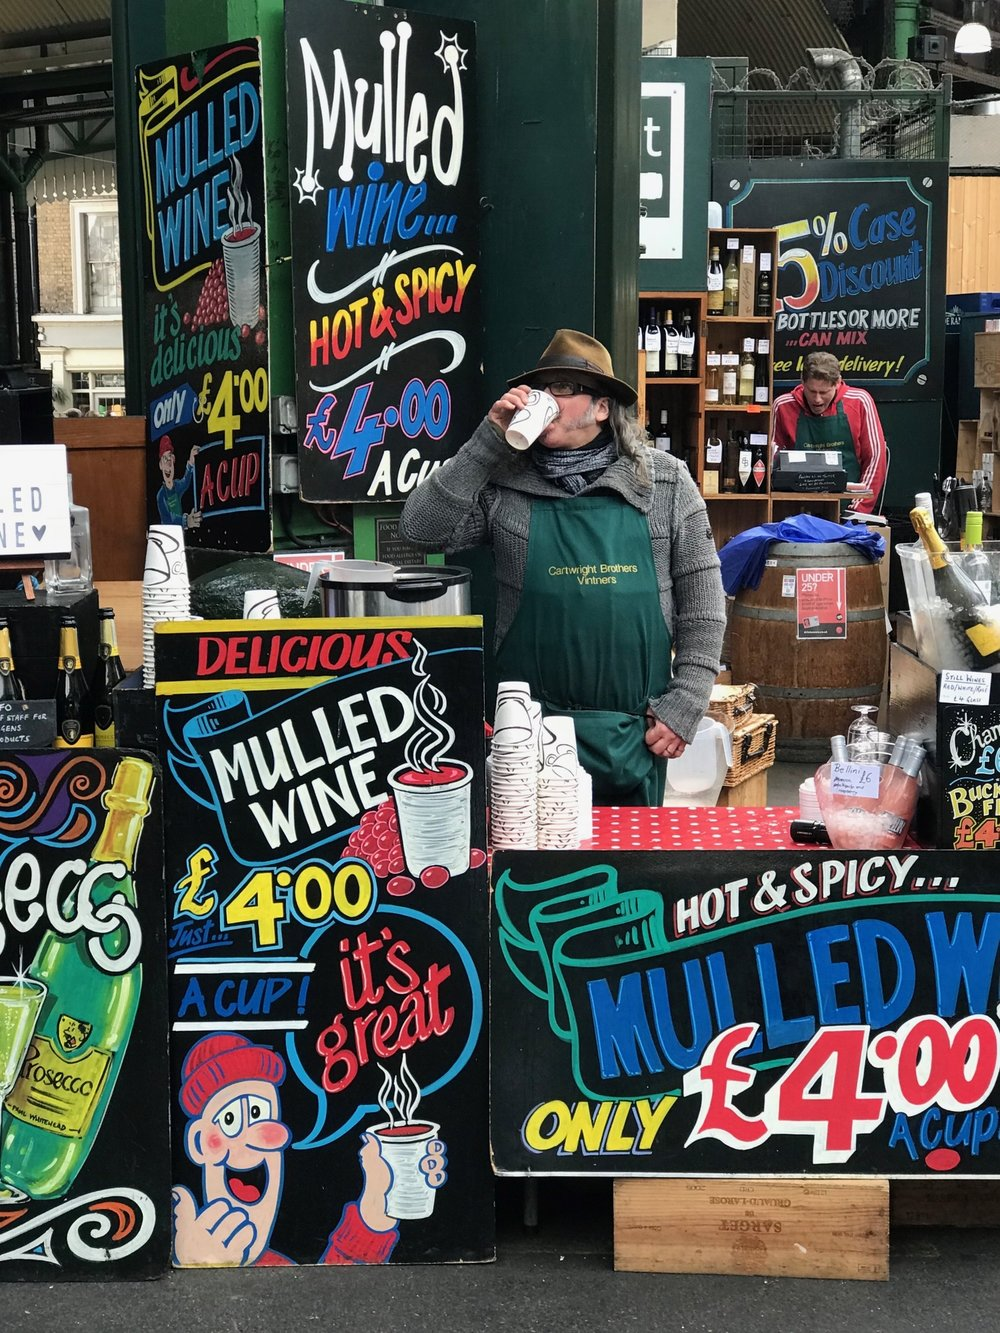 Mulled Wine for sale at The Borough Market. A Broad In London